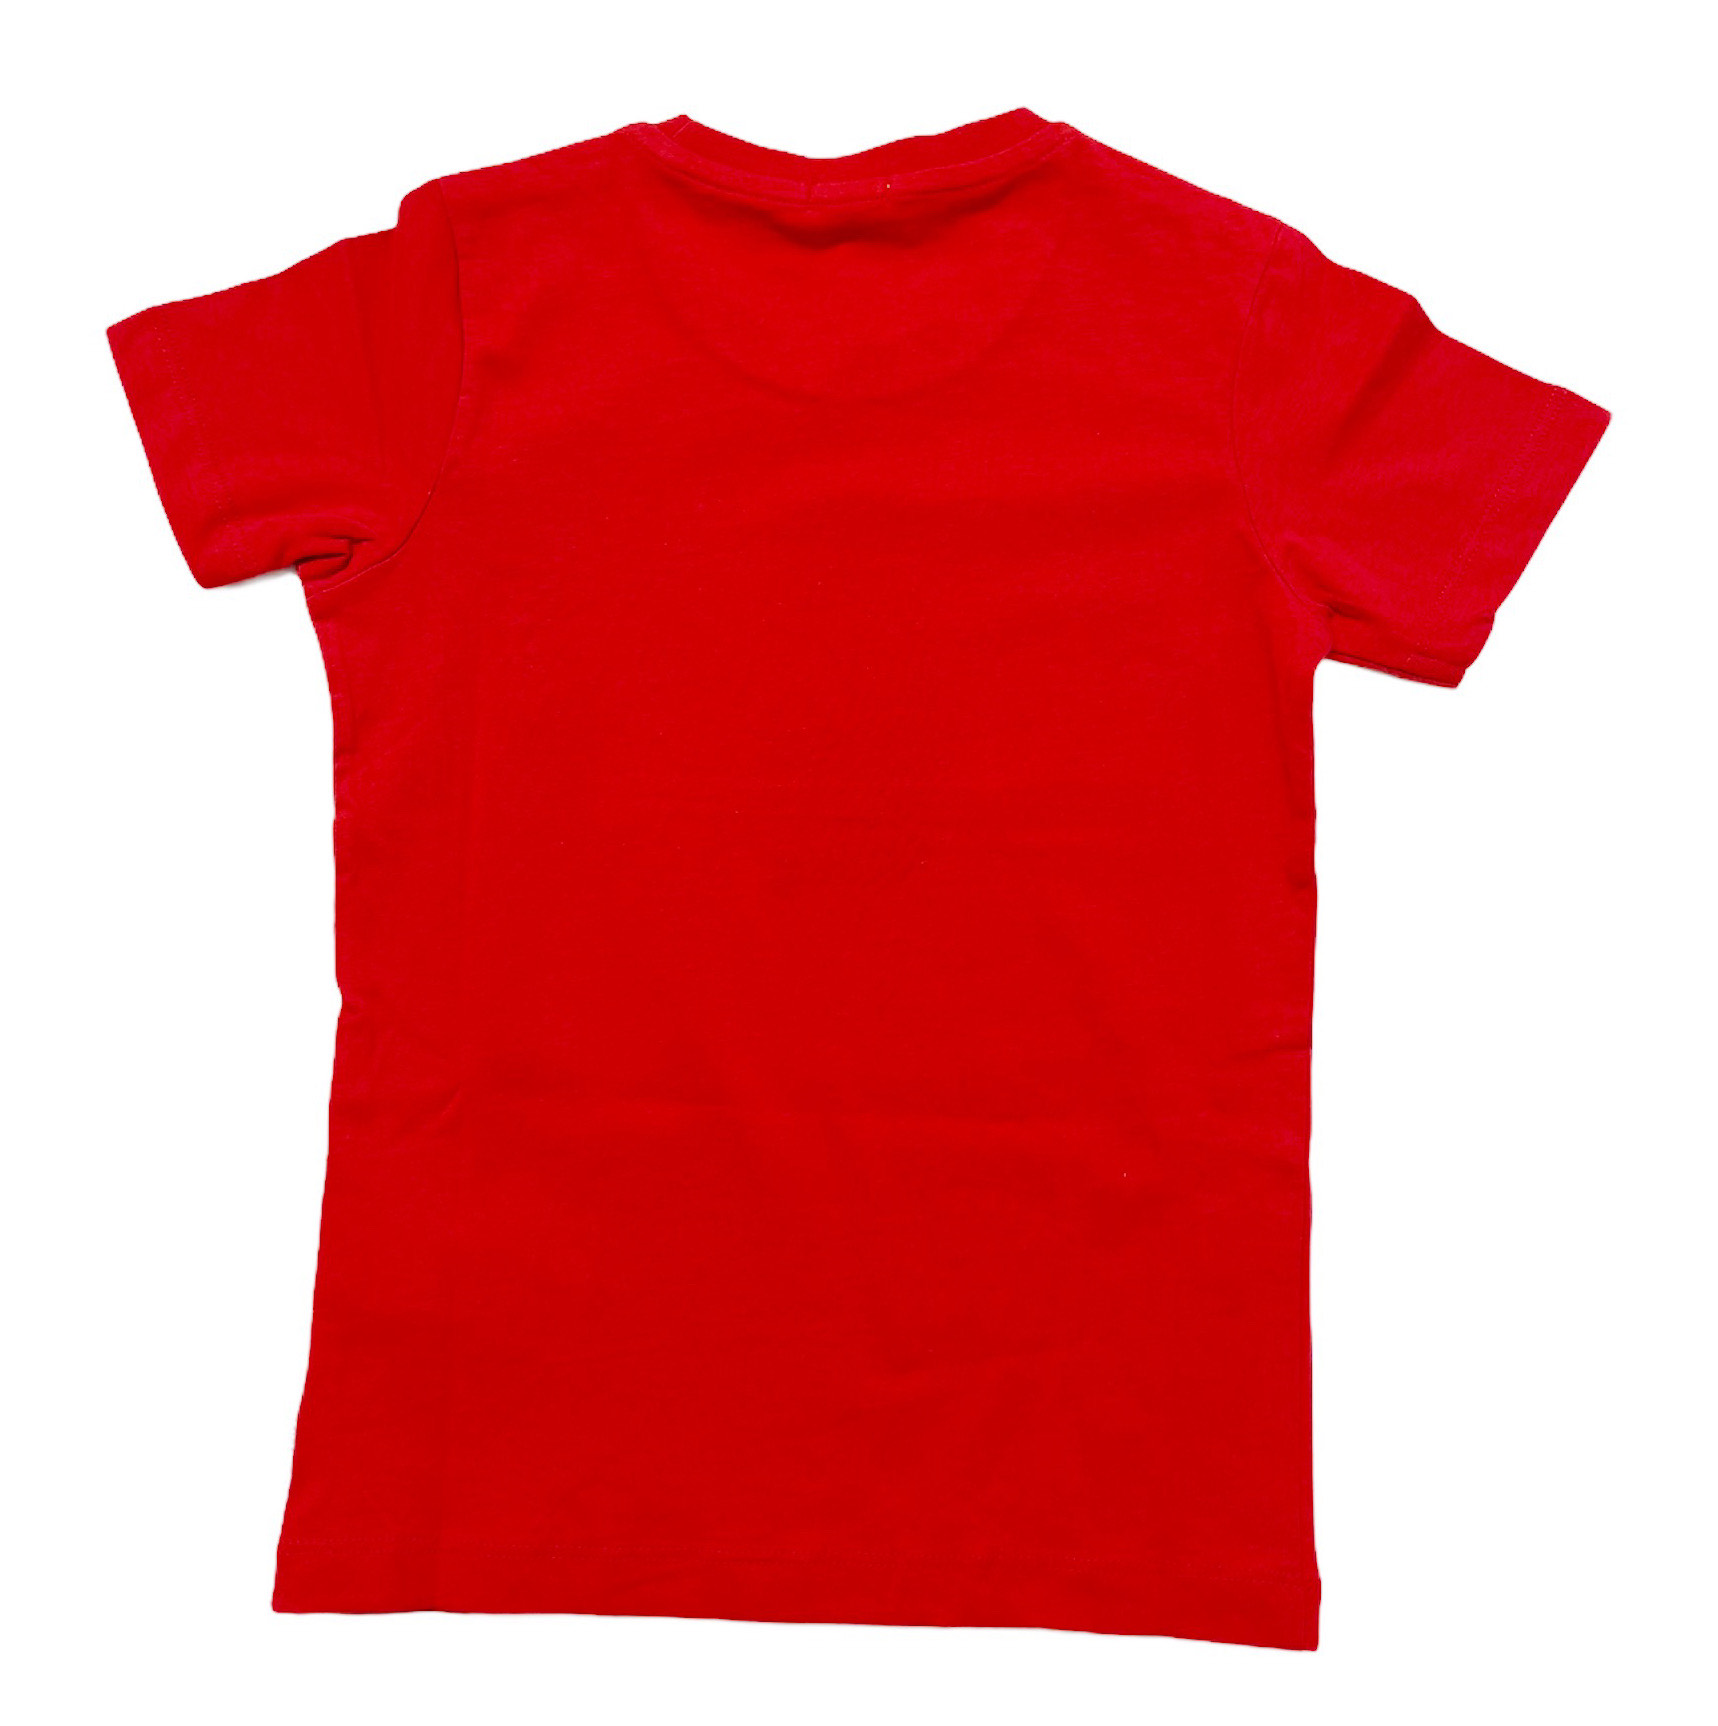 T-SHIRT MELBY ROSSA BRAVE PLAYERS 2